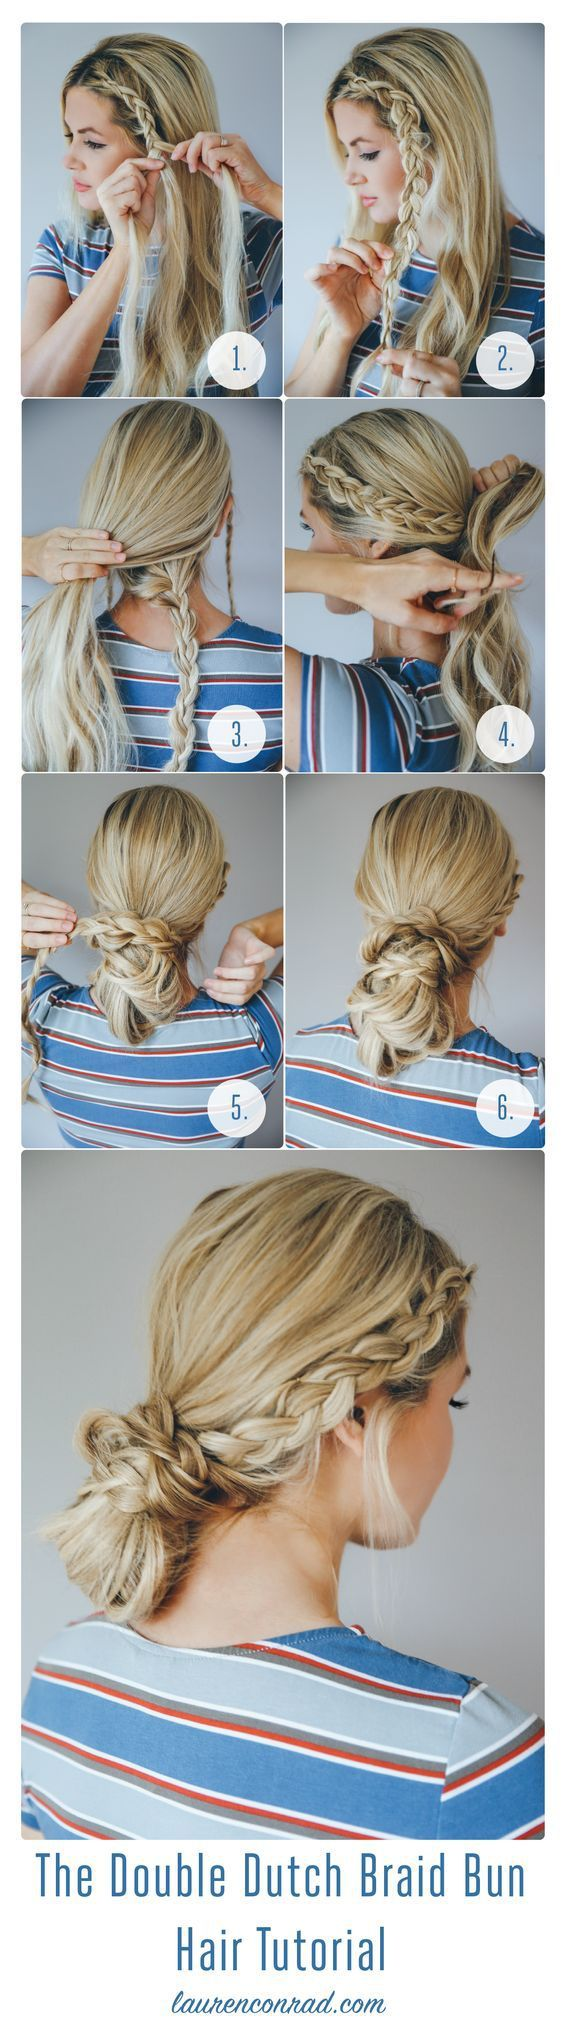 best hair styles casual images on pinterest hairstyle ideas